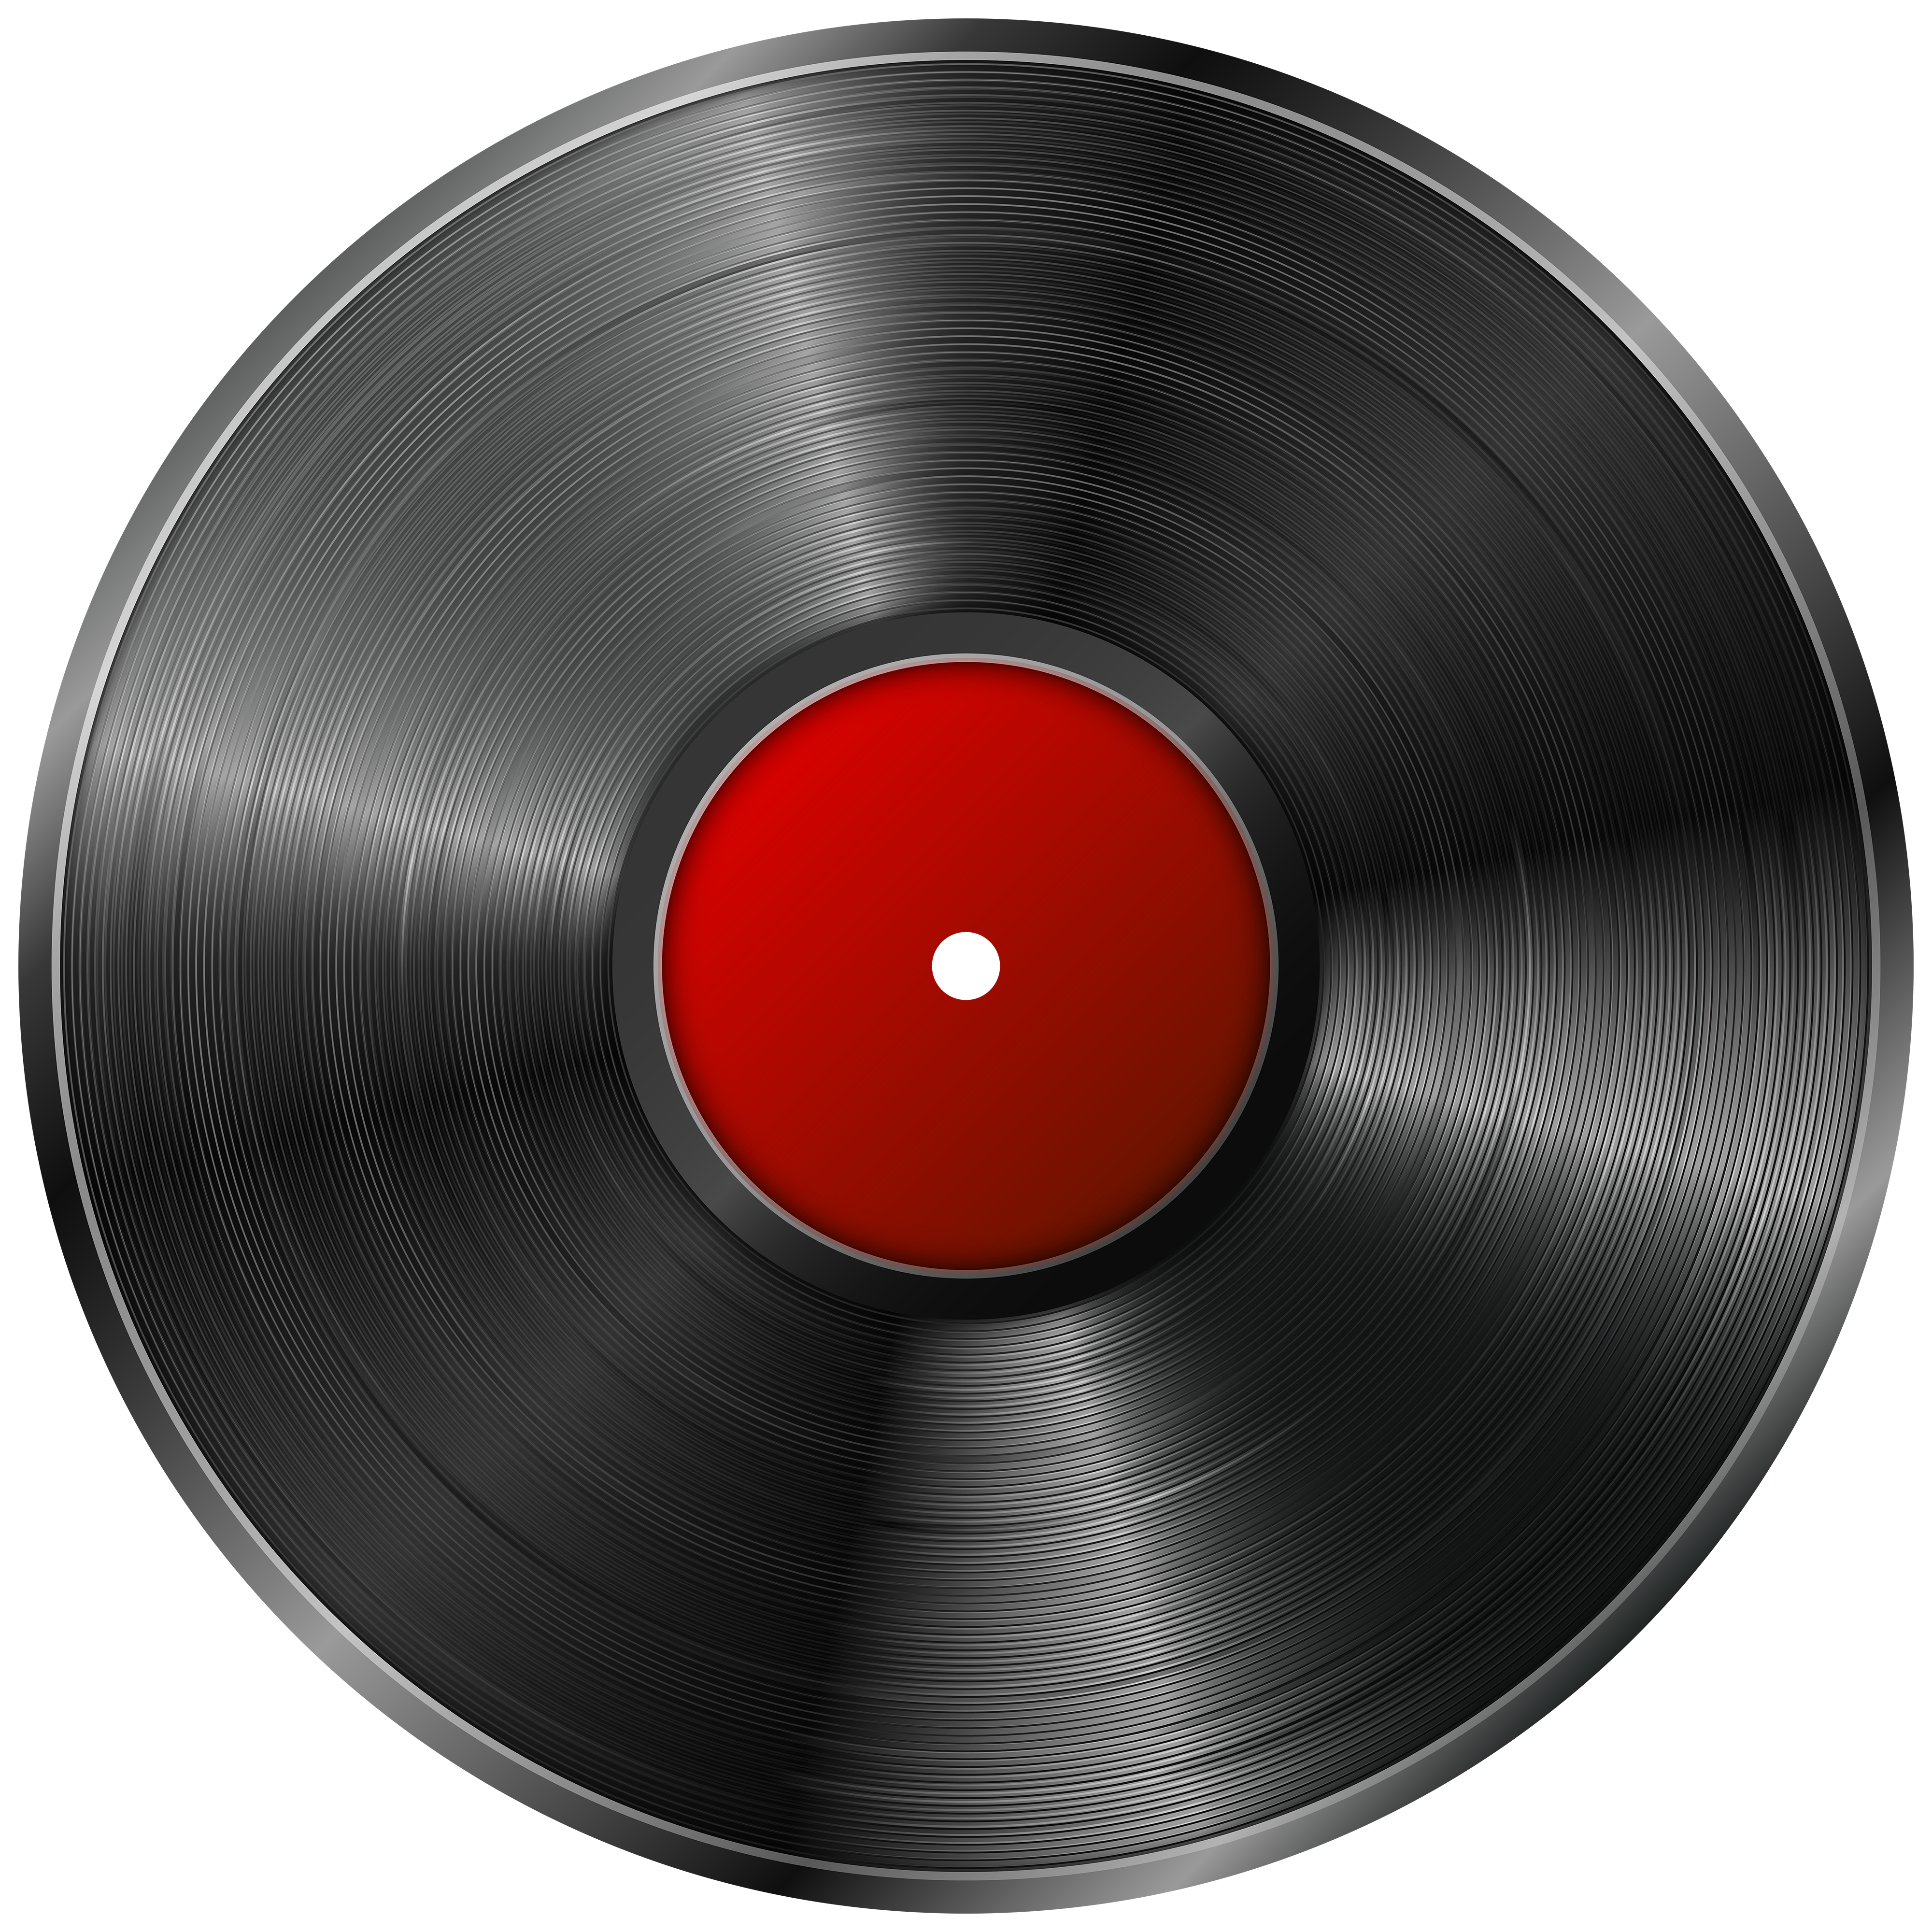 Vinyl Records Record Vinyl Record Shop Png Transparent Clipart Image And Psd File For Free Download Vinyl Records Image Paint Shop